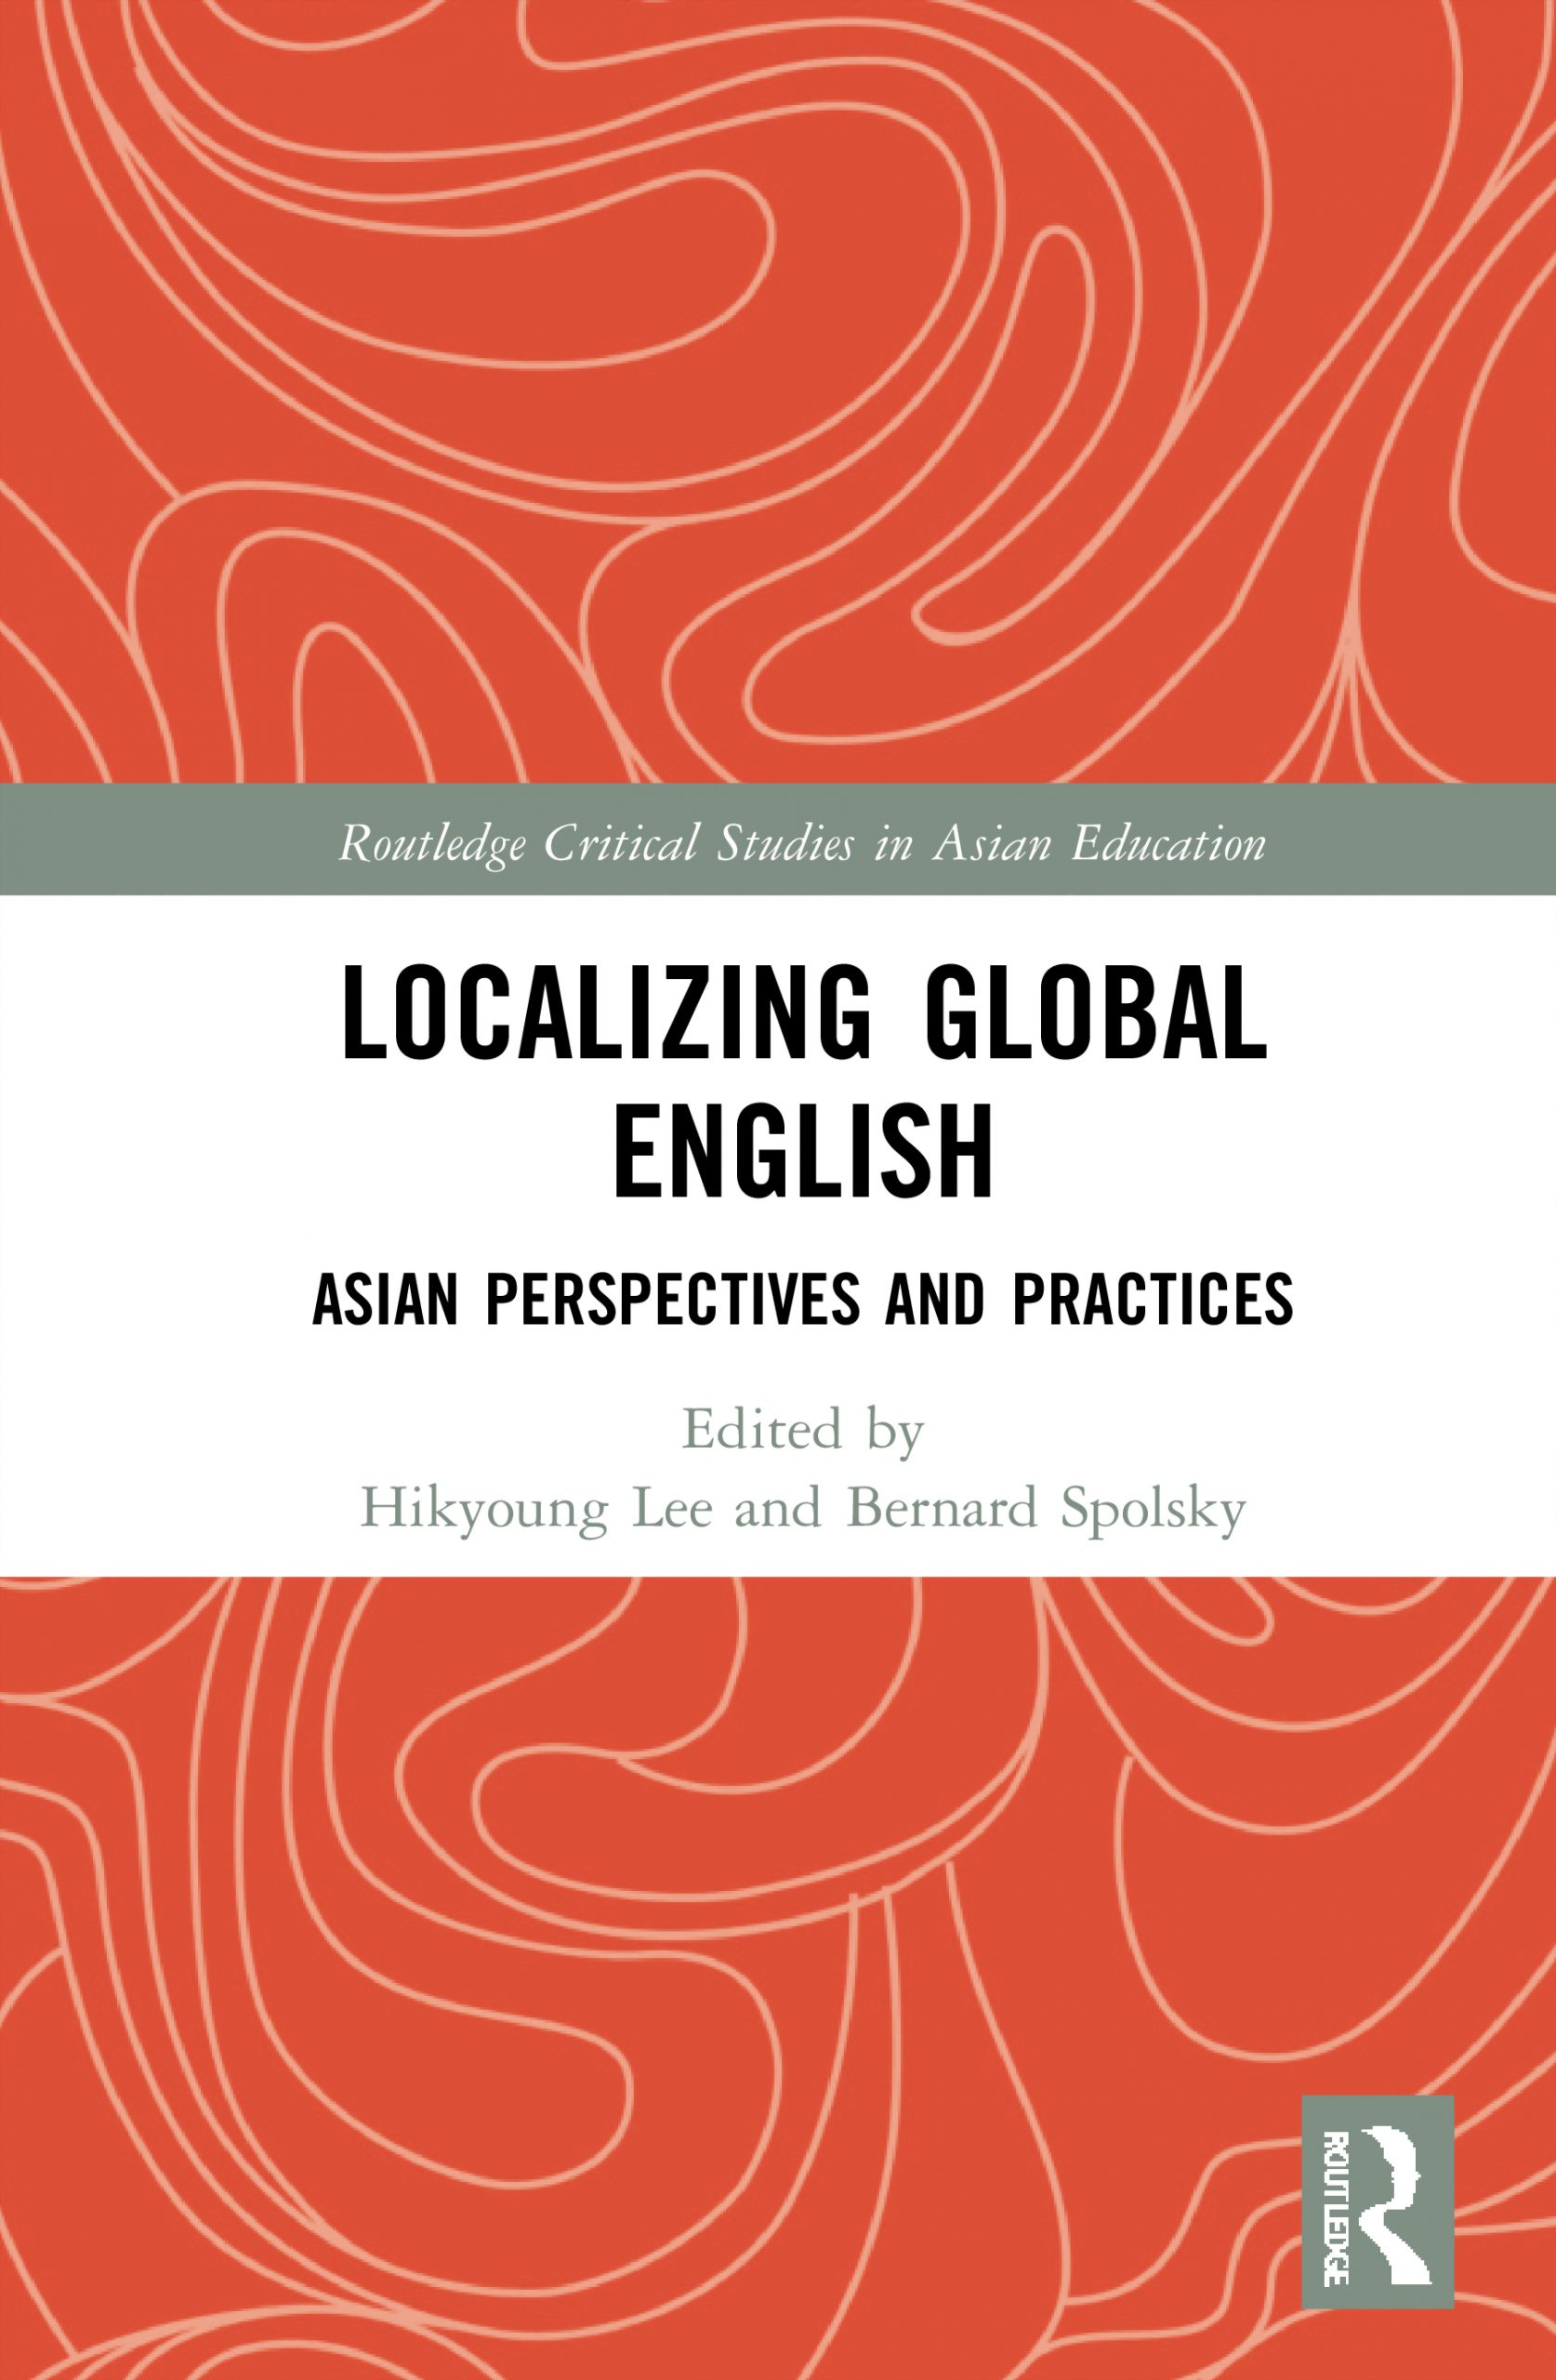 Routledge_Localizing Global English Asian Perspectives and Practices